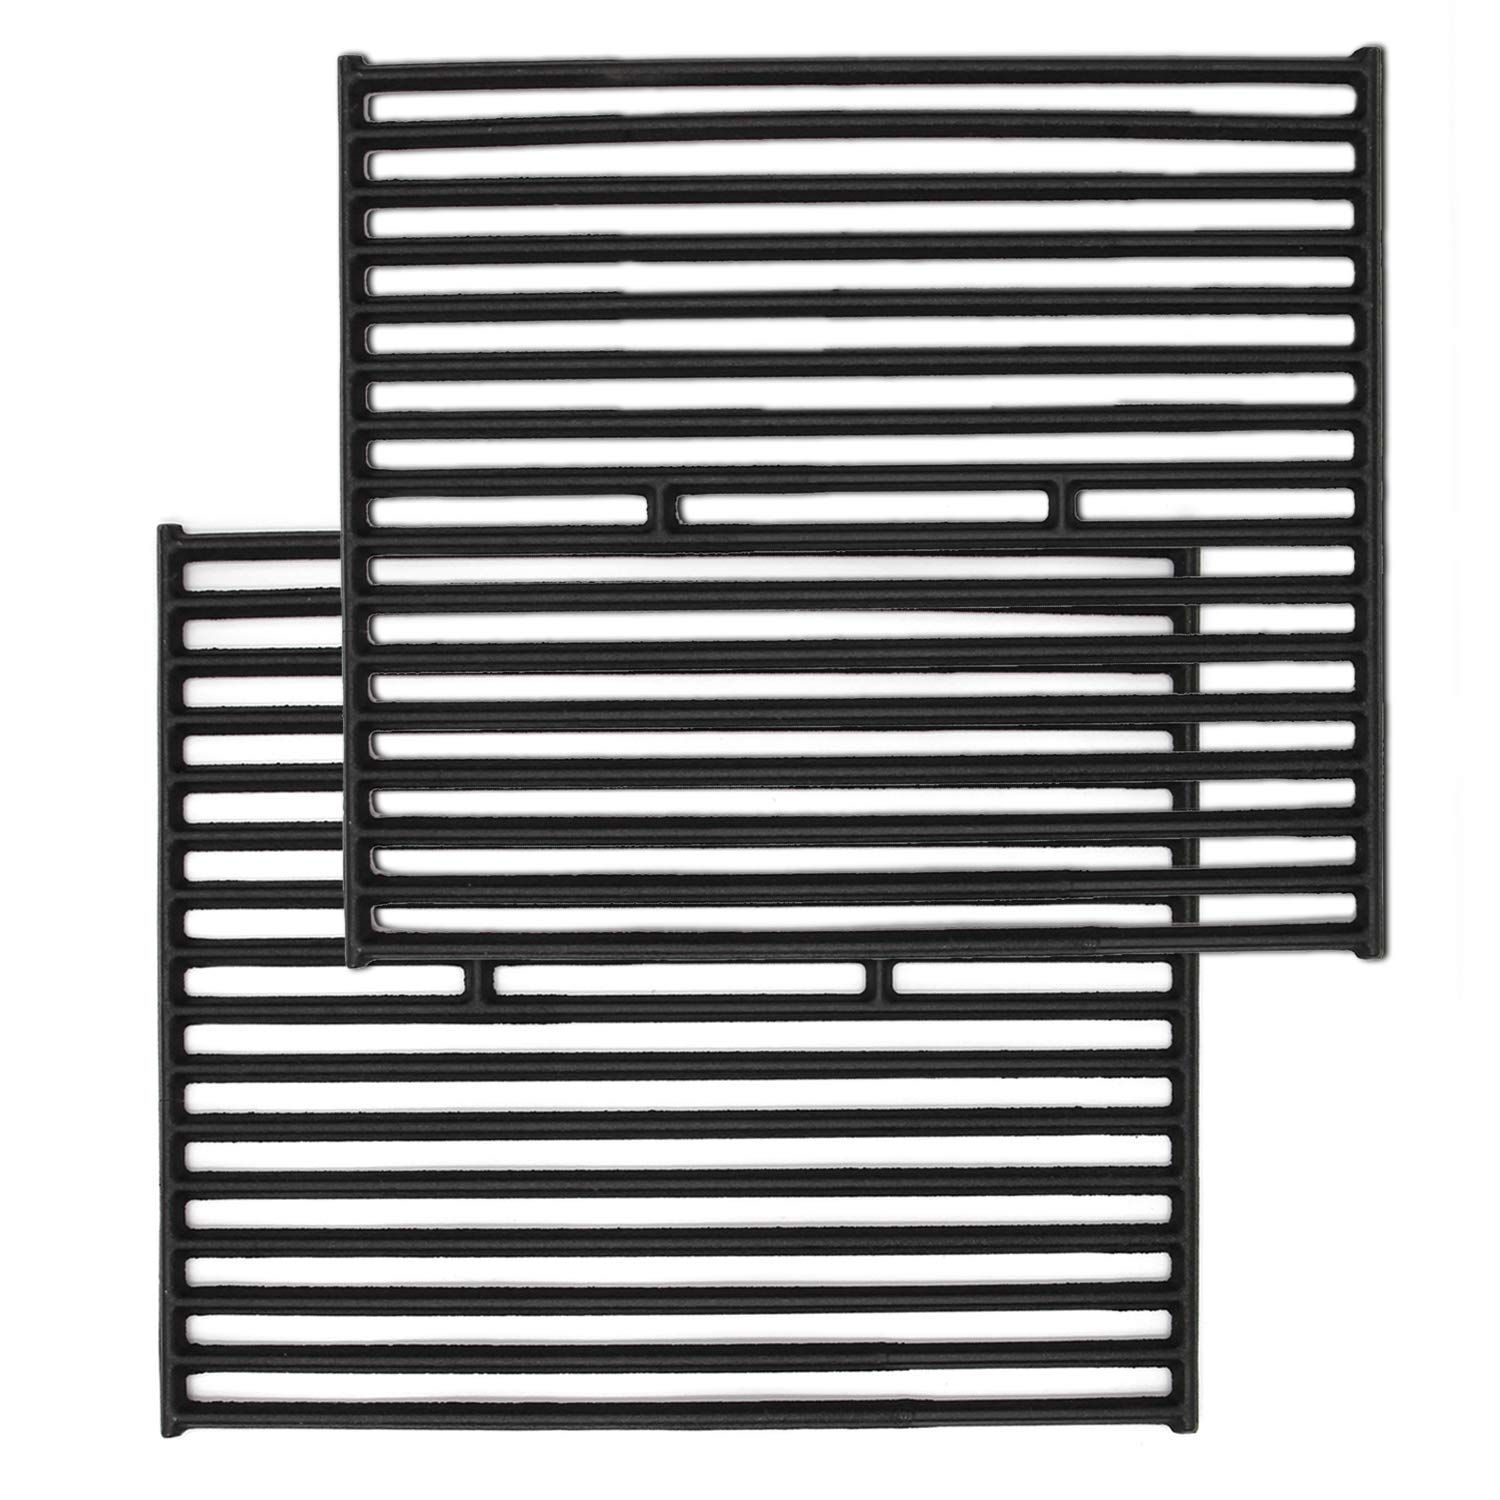 VICOOL hyG436B 15'' Matt Cast Iron Cooking Grid Grates for Broil King, Broil-Mate, Sliver Chef, Sterling and Huntington Gas Grills by VICOOL